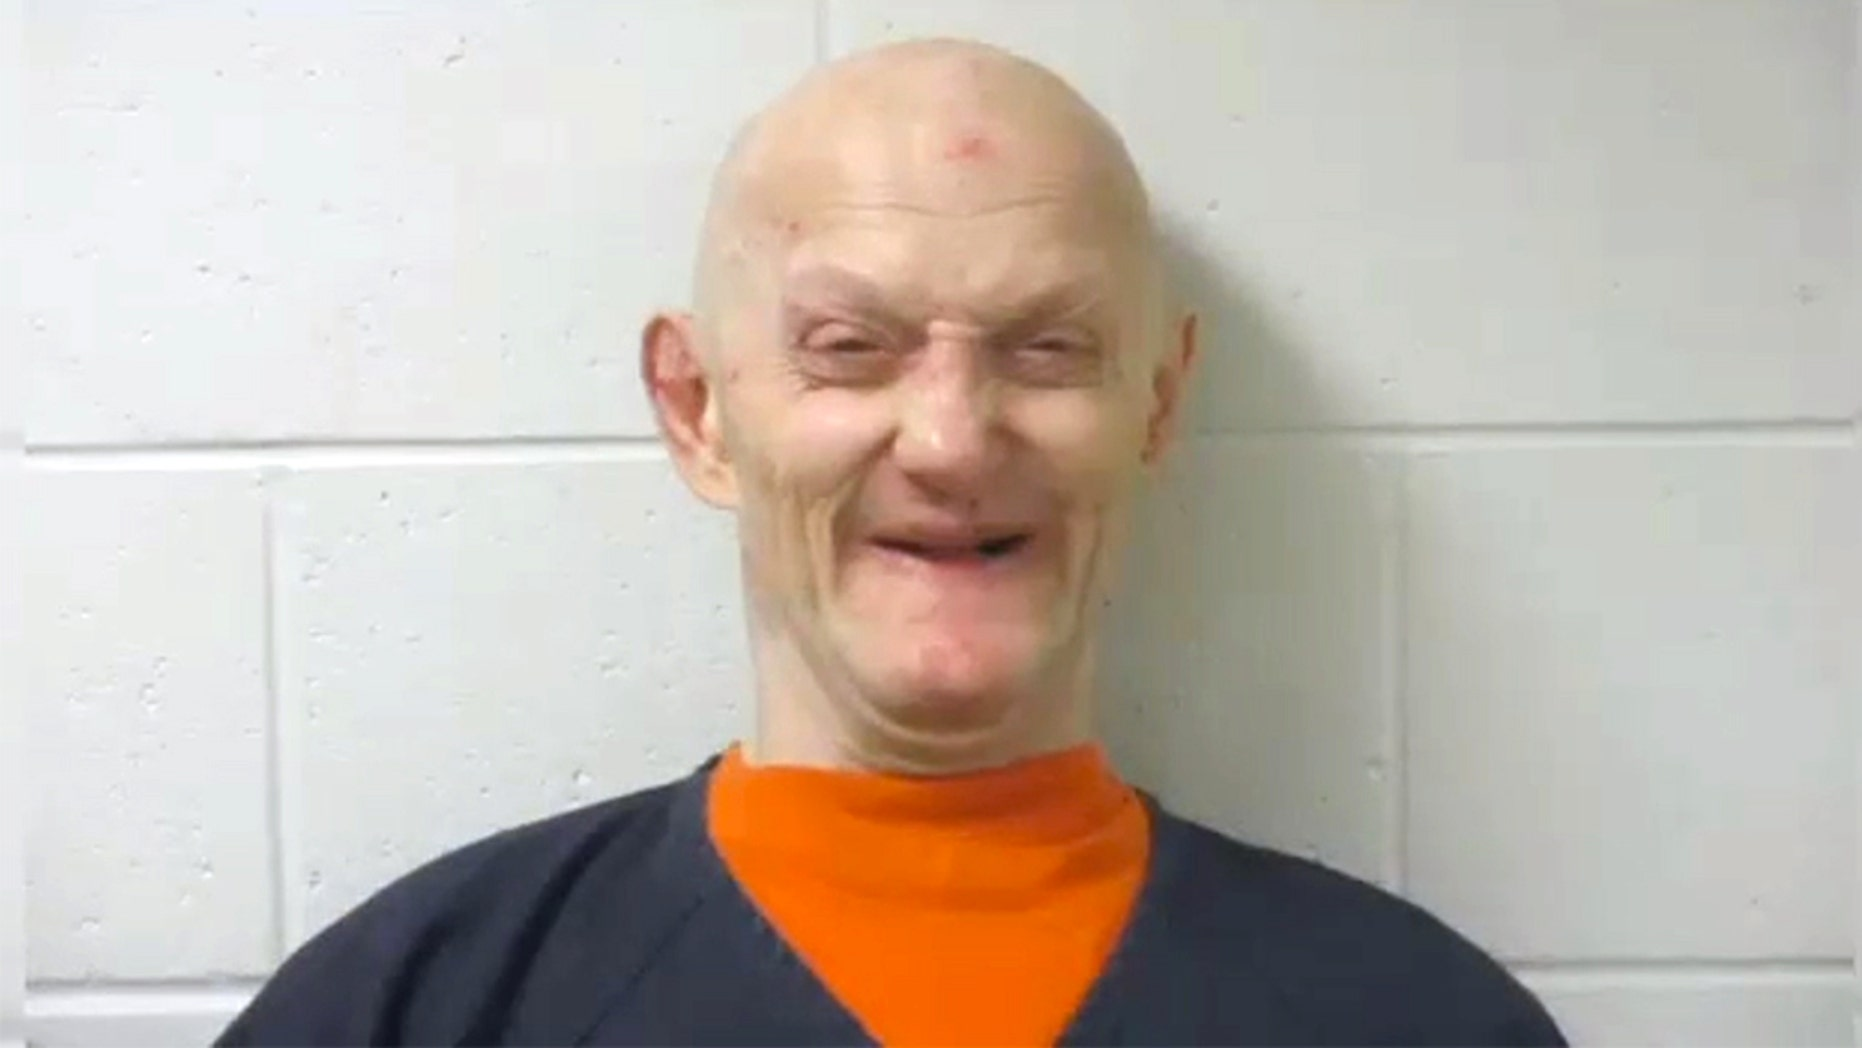 Duane Johnson, 58, was taken into custody after his wife was reportedly found dead inside their Searles, Minnesota home.